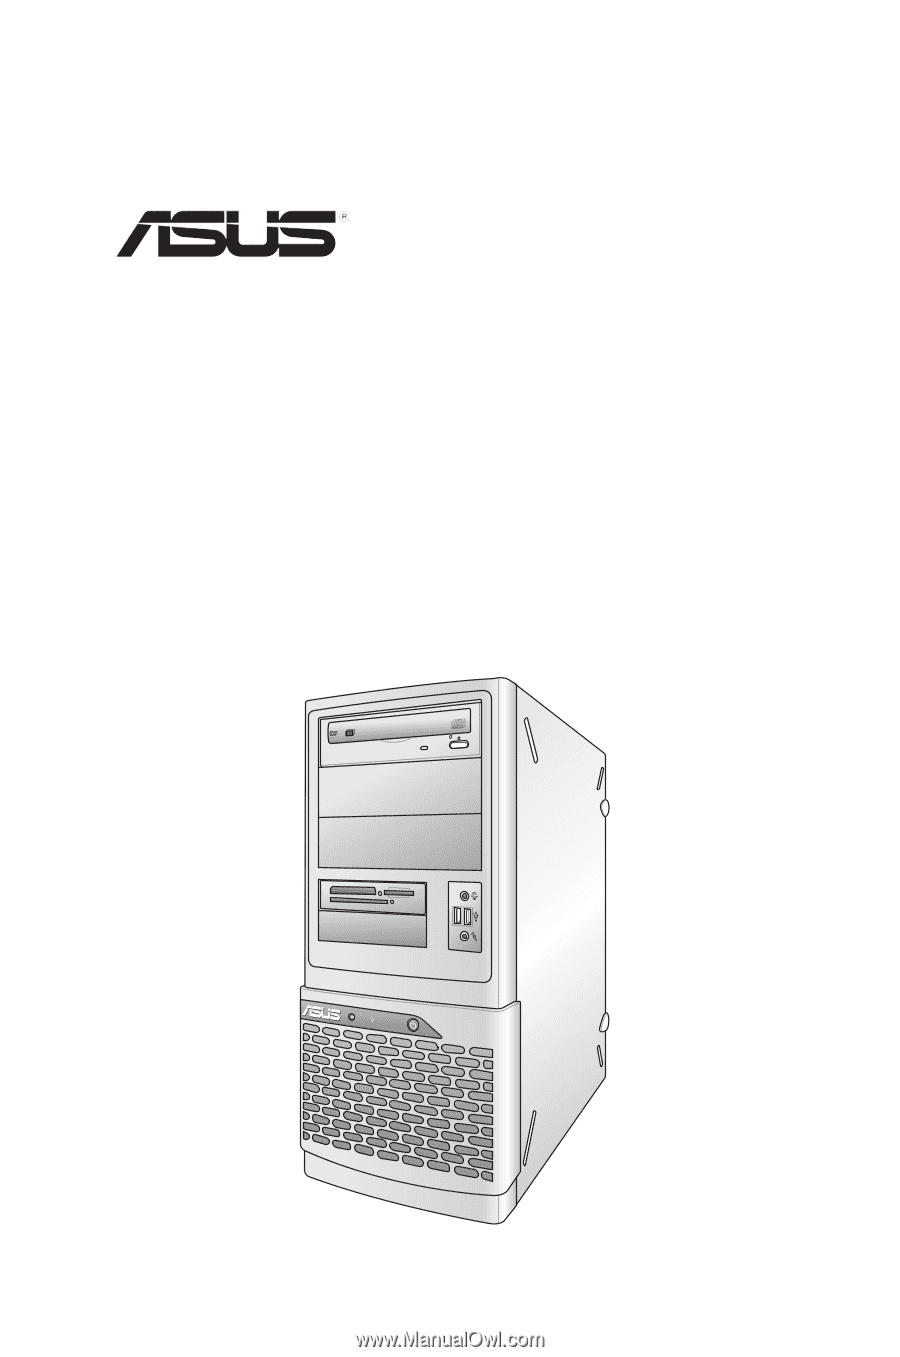 ASUS TW100-E6 DRIVER UPDATE